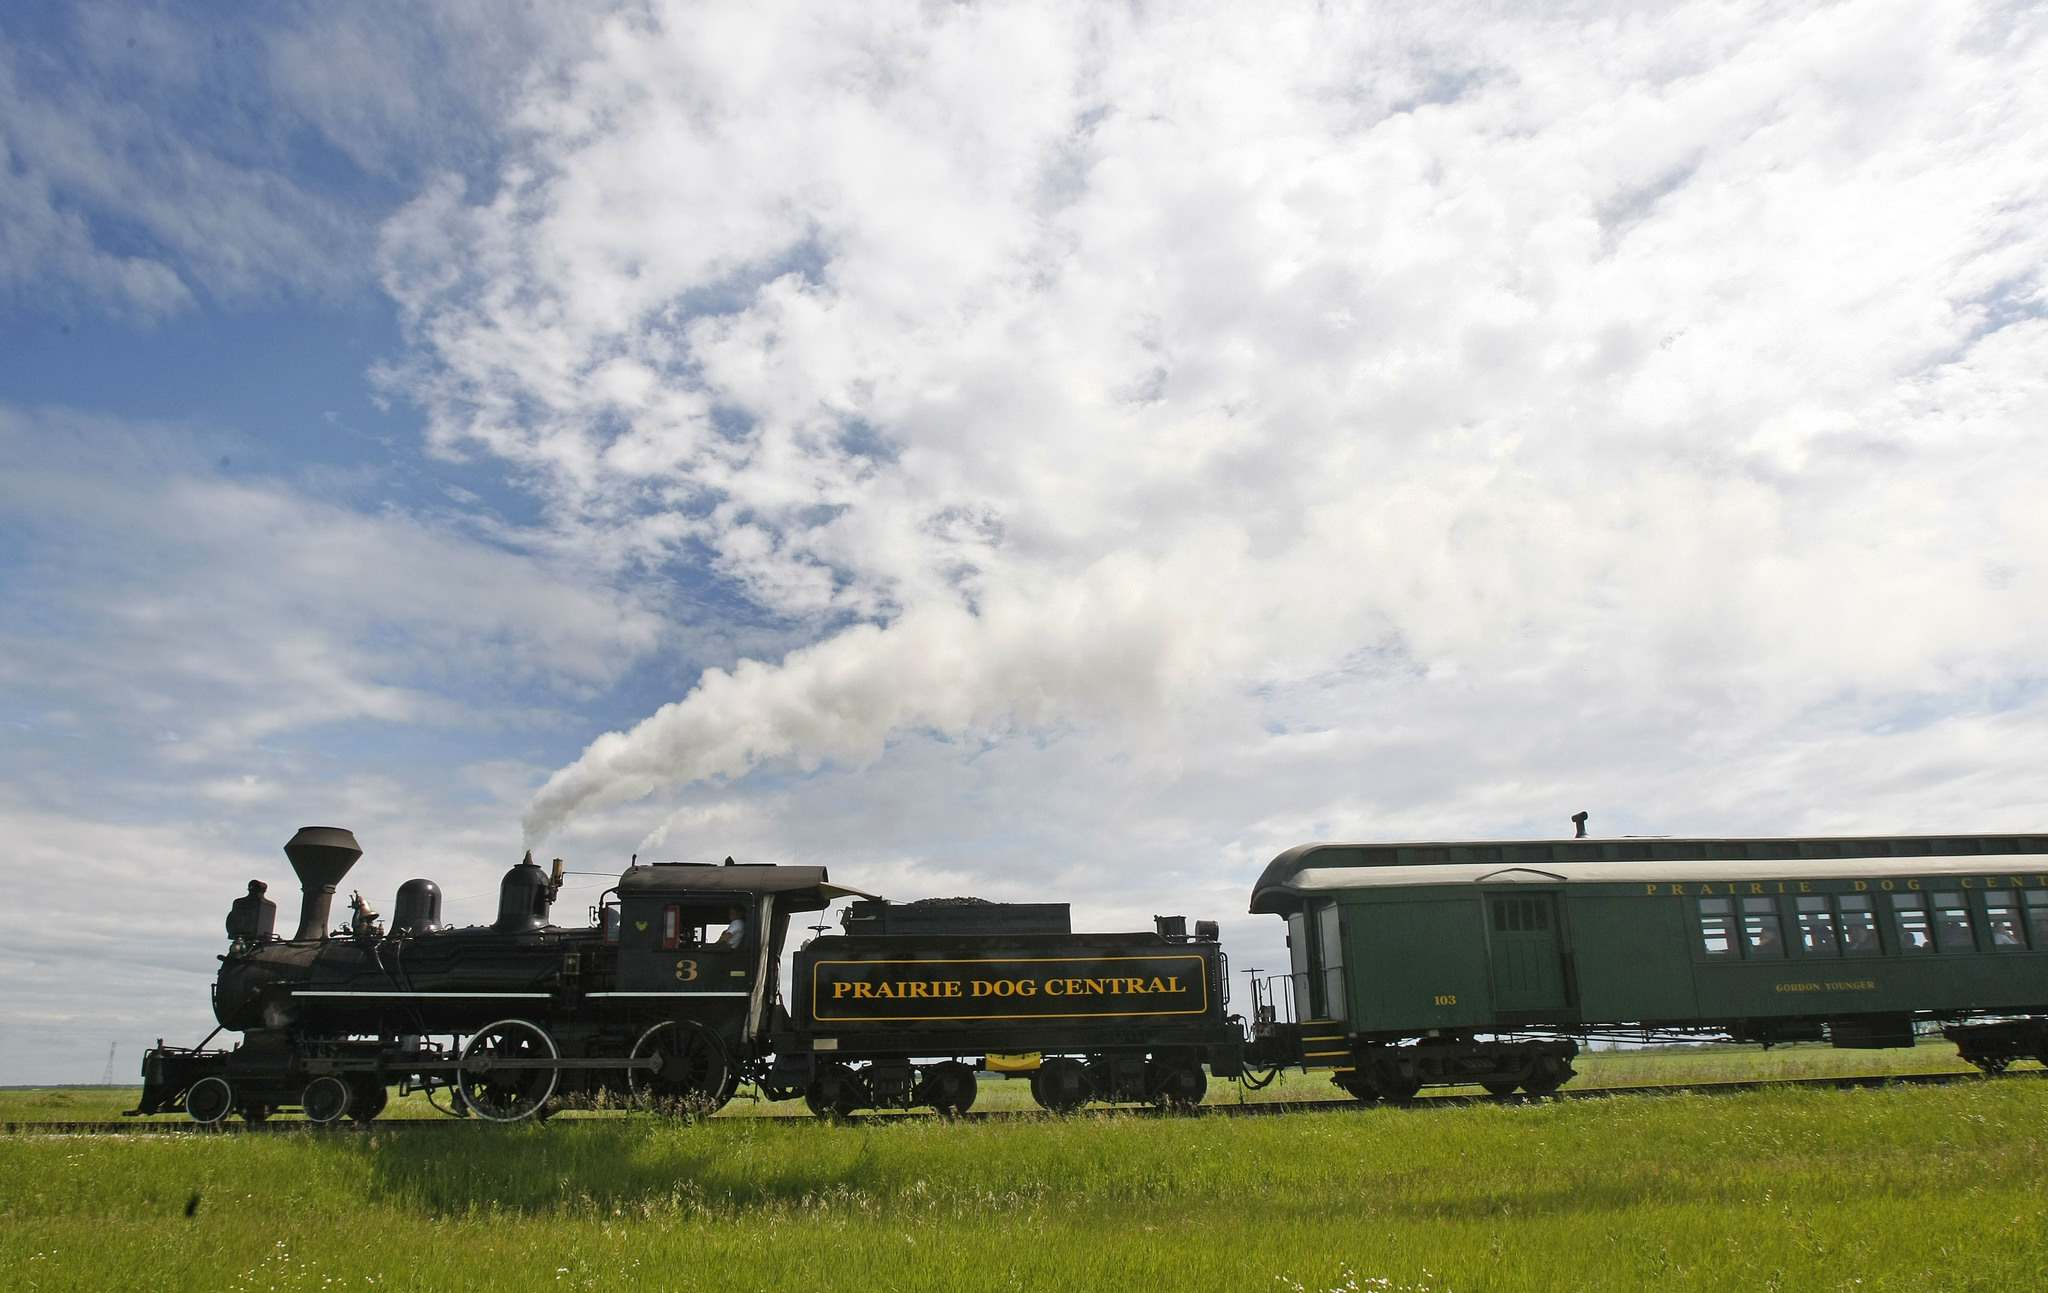 JOE BRYKSA / WINNIPEG FREE PRESS FILES</p><p>The Prairie Dog Central, an 1882 vintage steam engine, features a different program every day this weekend.</p></p>